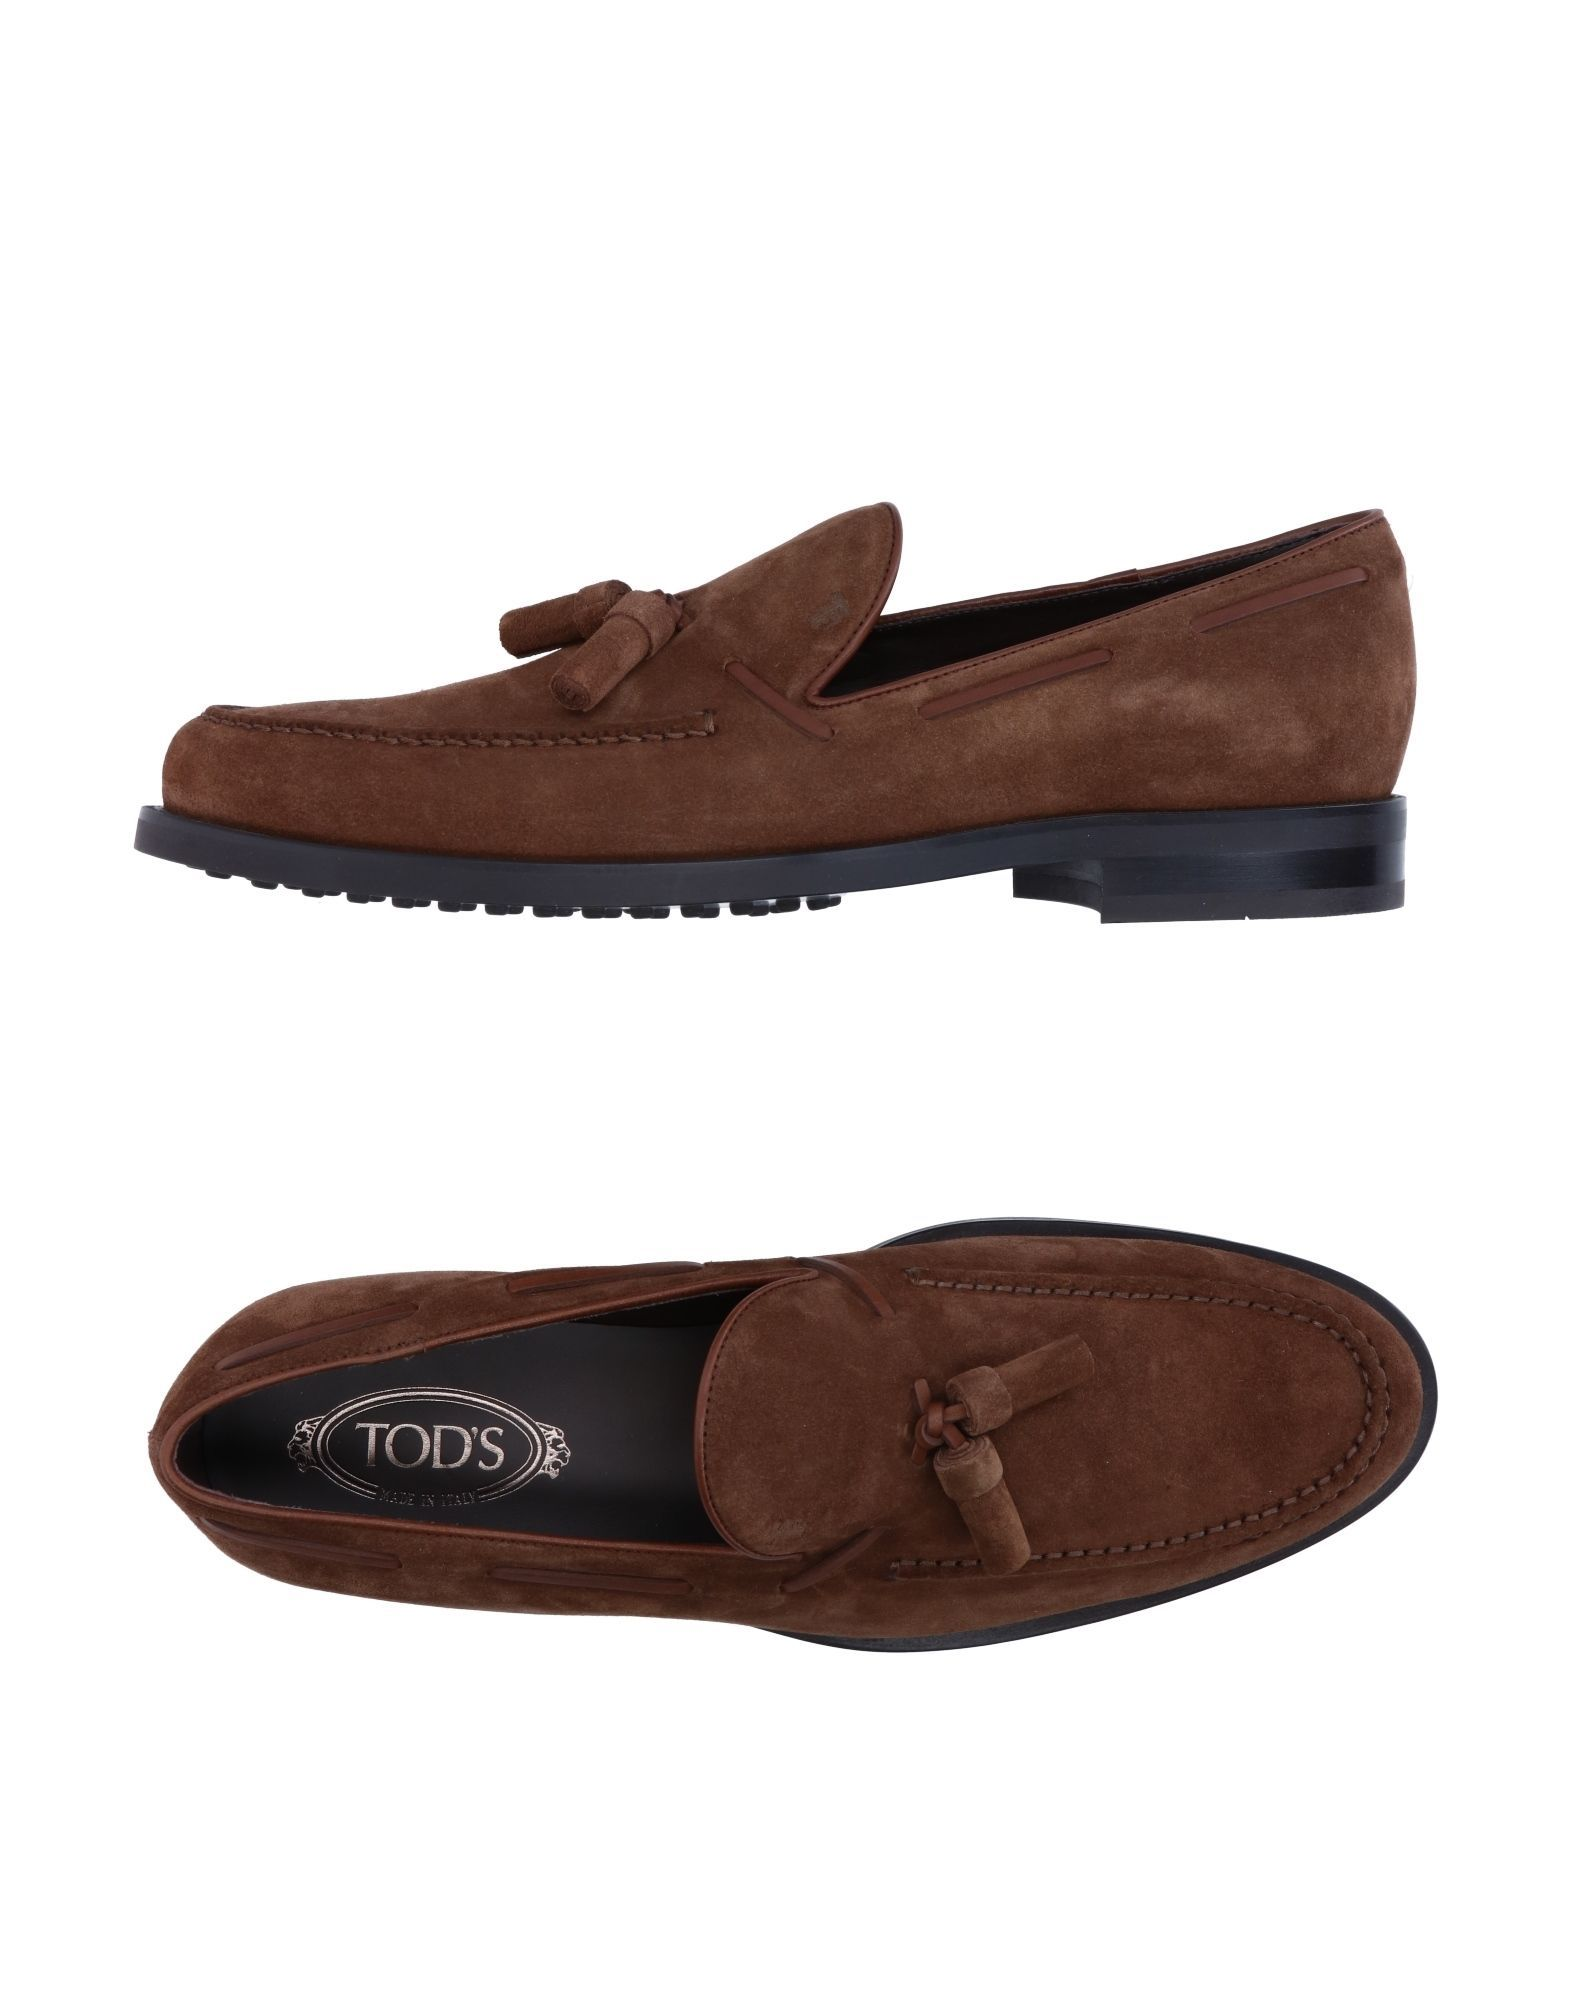 Tod's Brown Leather Loafers